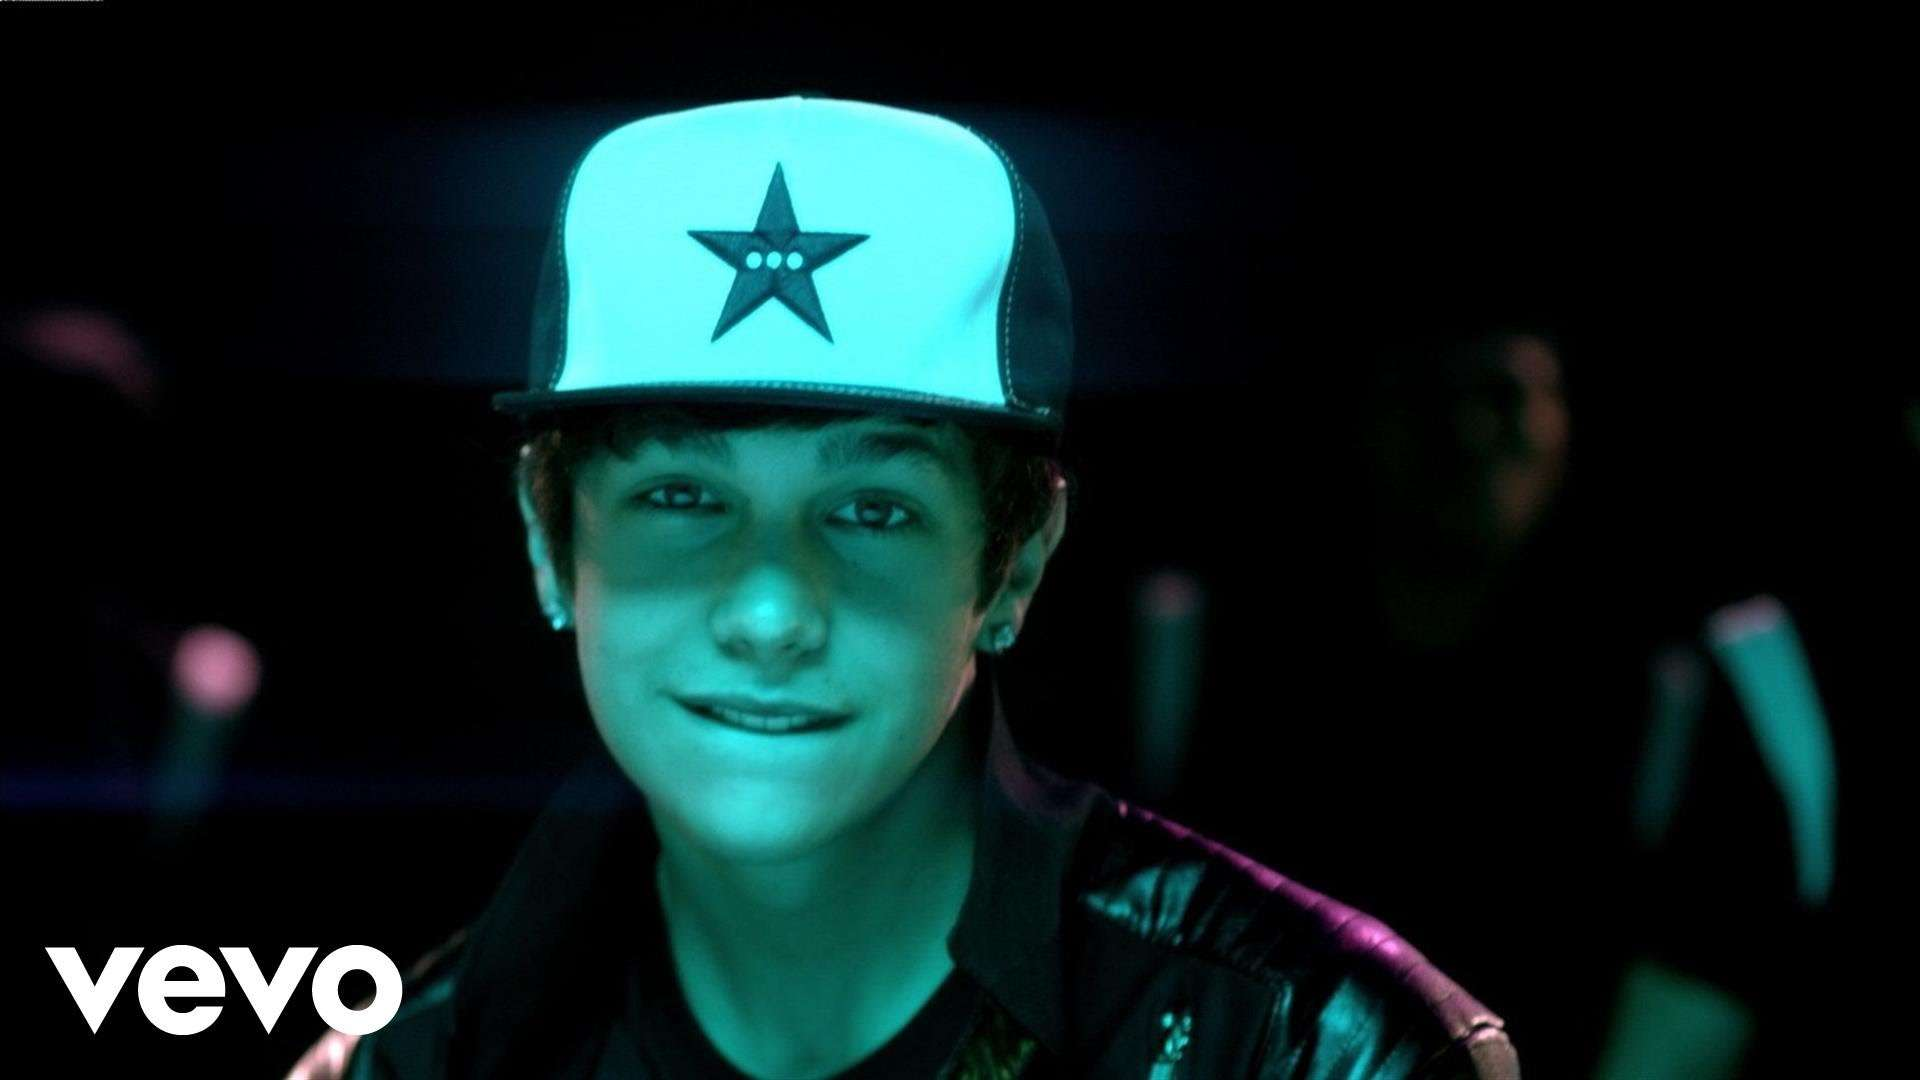 Austin Mahone - Say You're Just A Friend ft. Flo Rida - YouTube